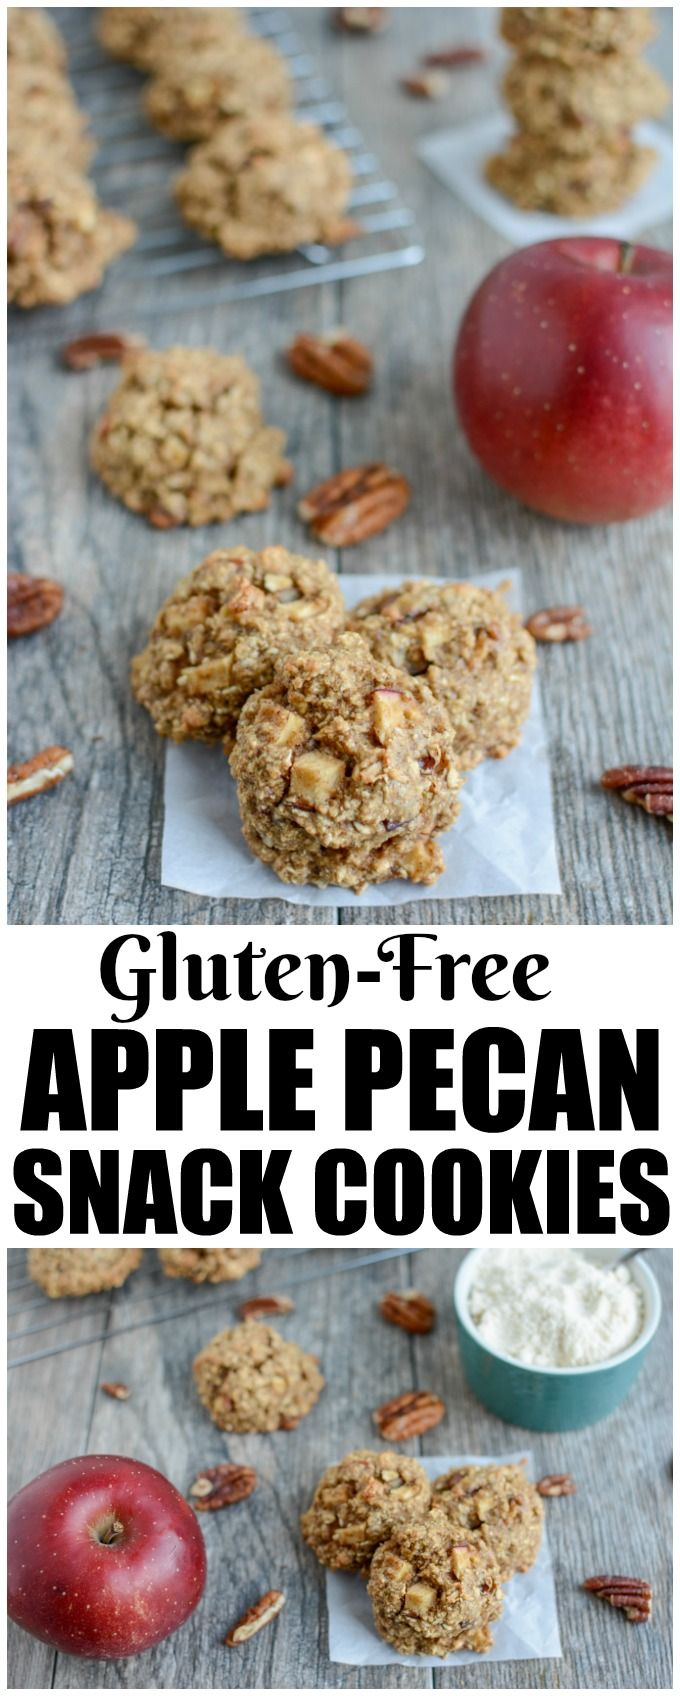 These gluten-free Apple Pecan Snack Cookies are a healthy, kid-friendly snack, breakfast or dessert. They're made with coconut and oat flour, full of fresh apples and sweetened with maple syrup. (AD)